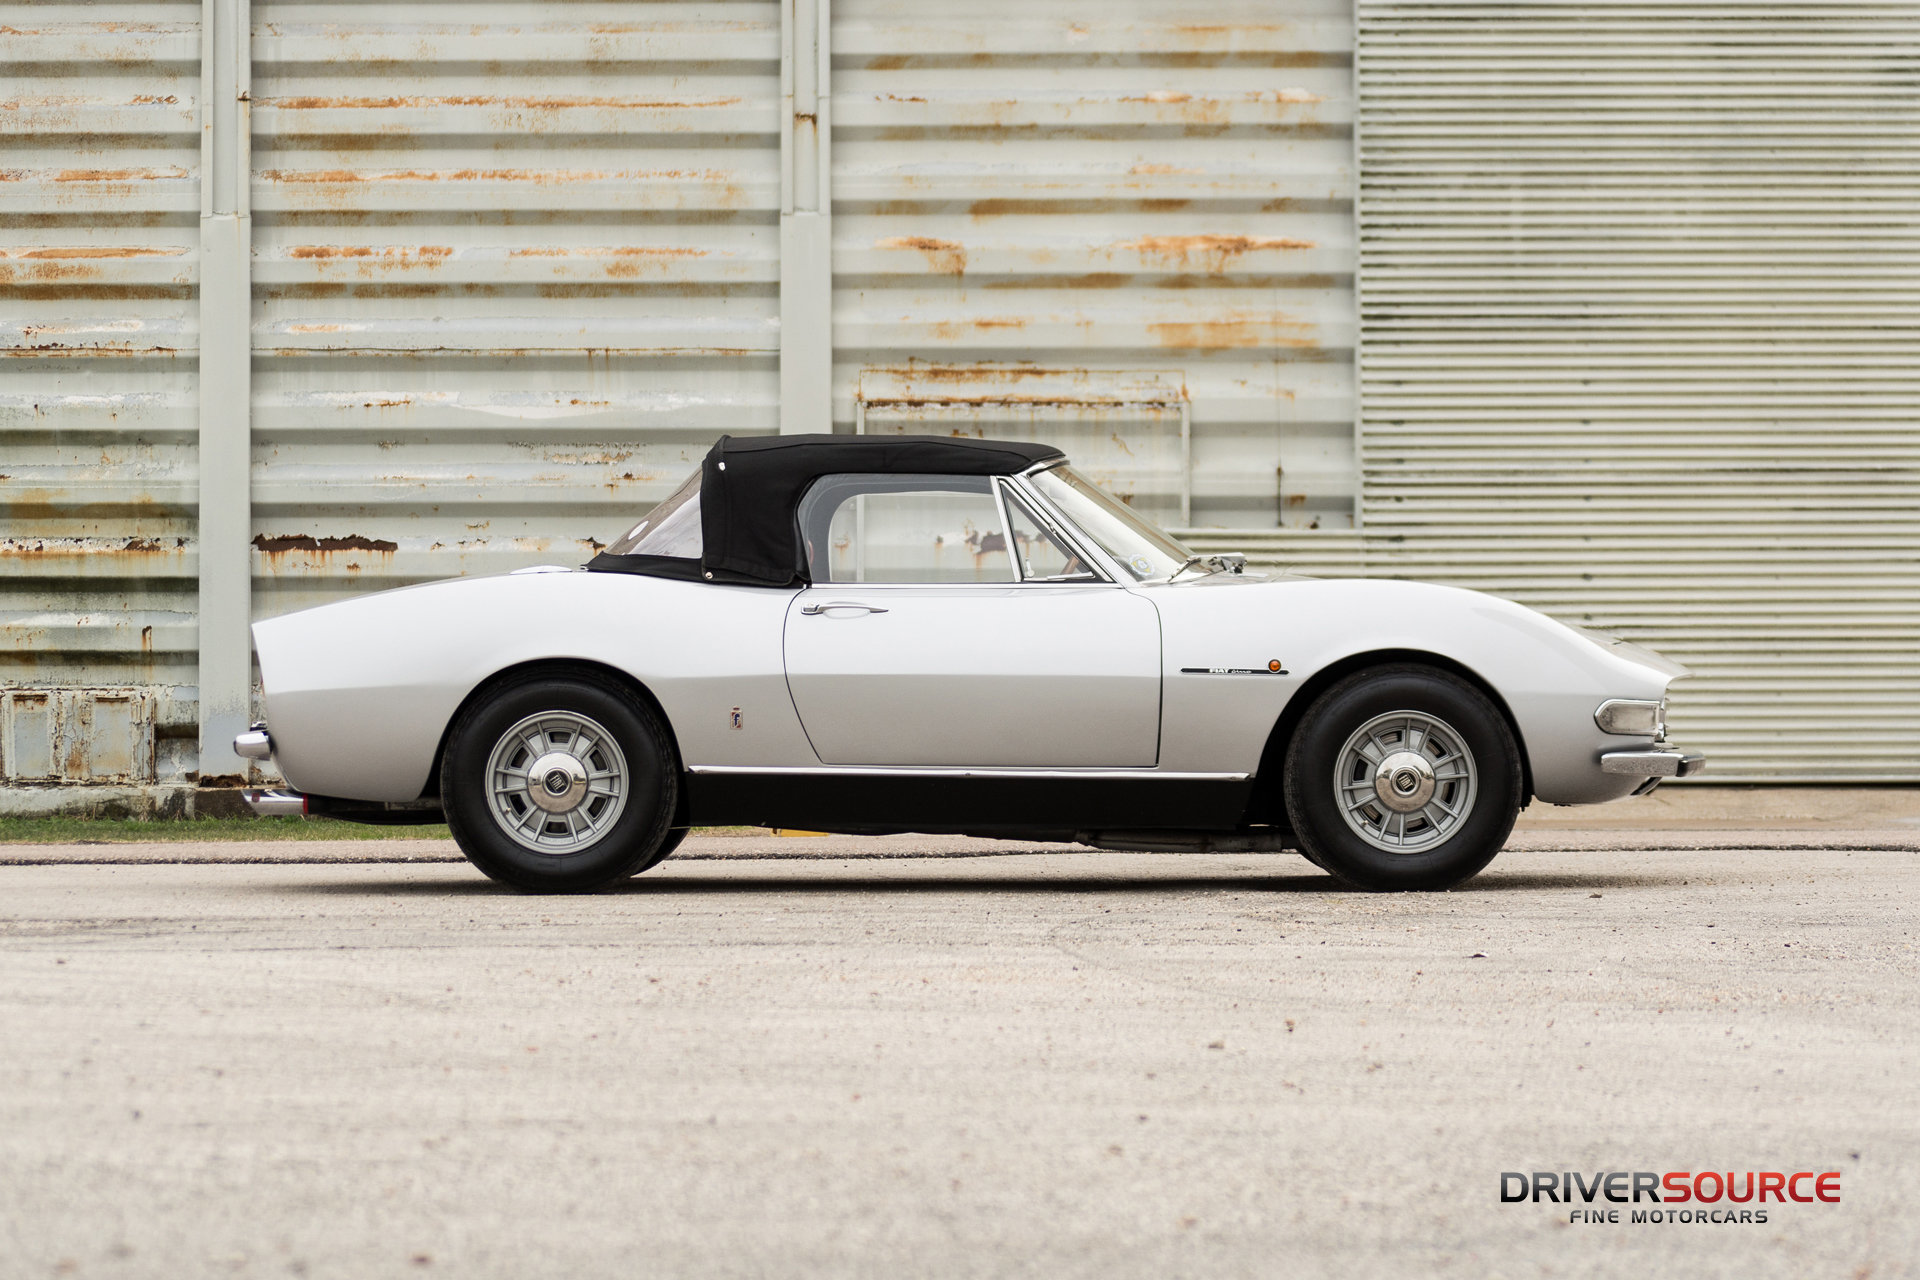 1970 Fiat Dino 2400 Spider For Sale 76261 Mcg Convertible